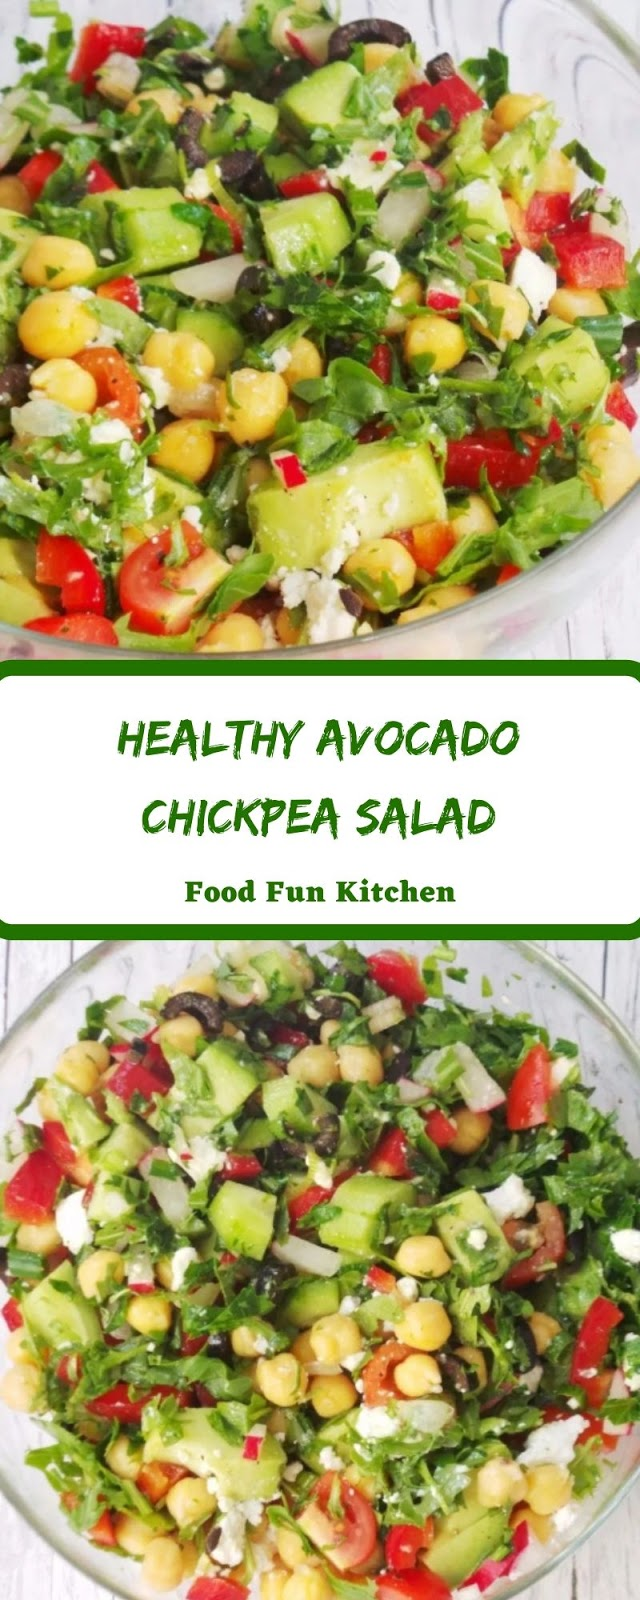 HEALTHY AVOCADO CHICKPEA SALAD